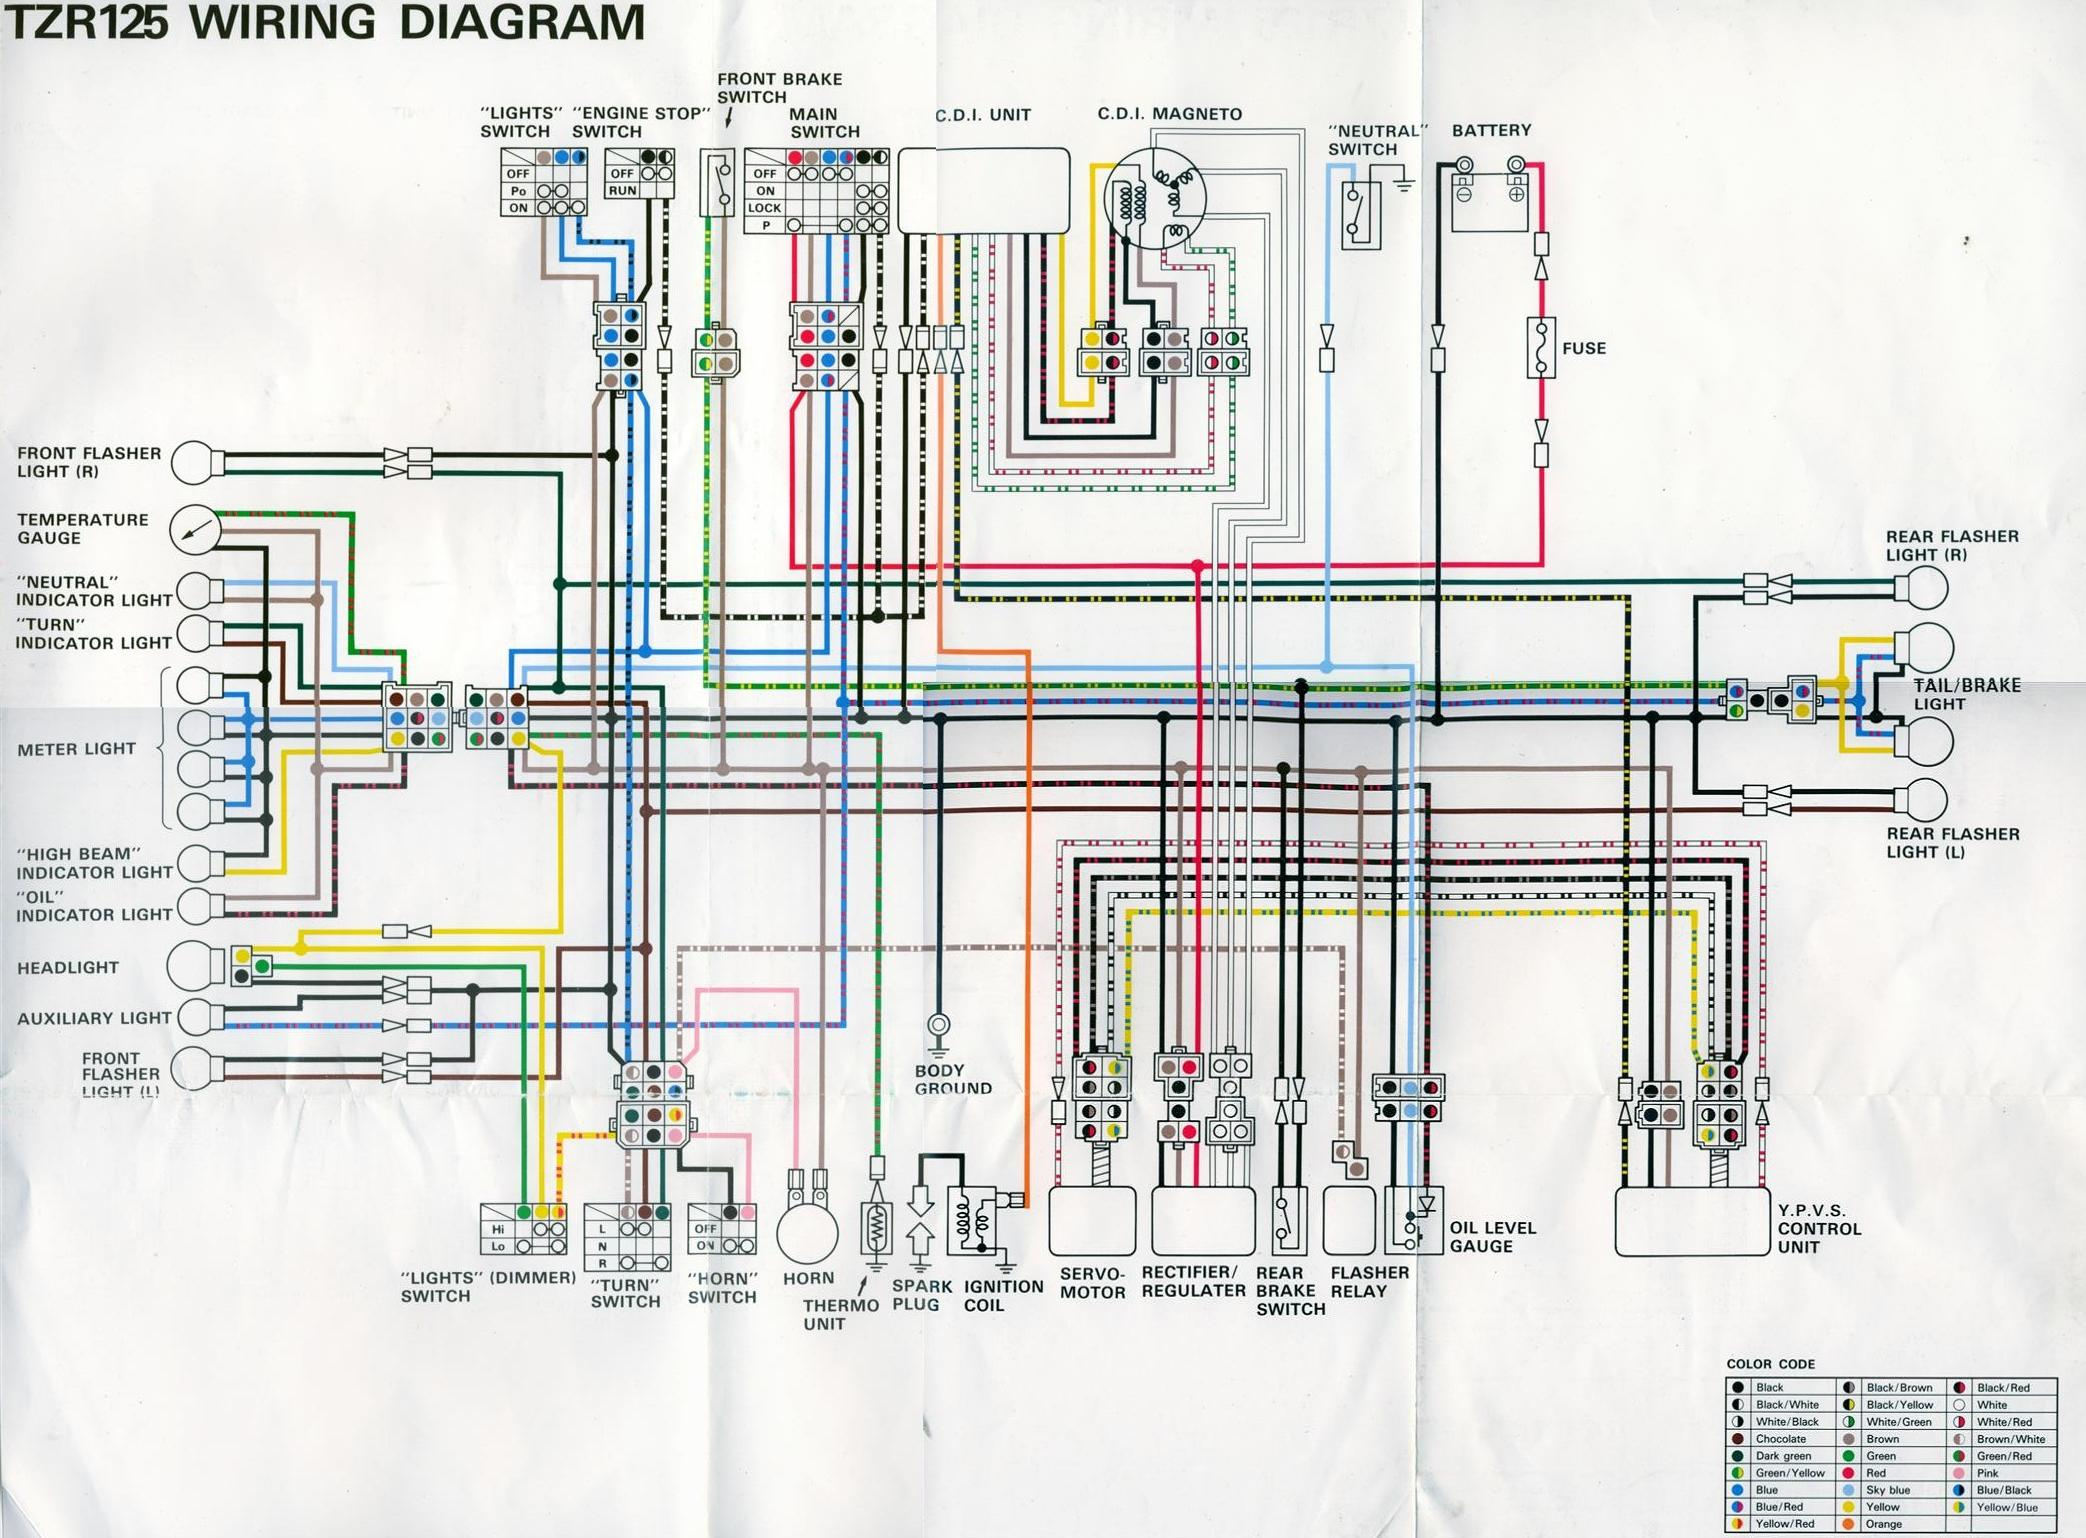 125cc Wiring Diagram Boreem Scooter Dj Unreal S 2 Stroke Documentation Storage Site Rh Djunreal Co Uk Lifan 125 Skyteam